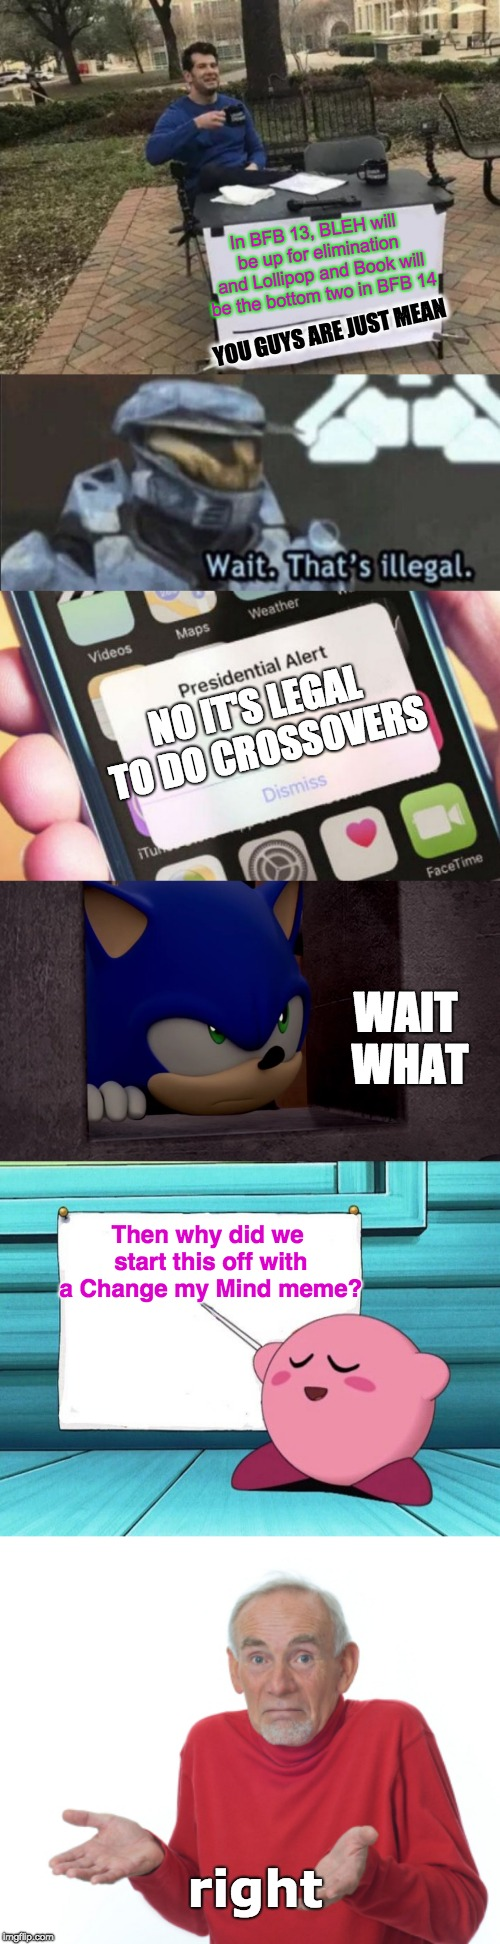 In BFB 13, BLEH will be up for elimination and Lollipop and Book will be the bottom two in BFB 14 YOU GUYS ARE JUST MEAN NO IT'S LEGAL TO DO | image tagged in sonic is not impressed - sonic boom,guess i'll die,memes,change my mind,kirby teaches,presidential alert | made w/ Imgflip meme maker